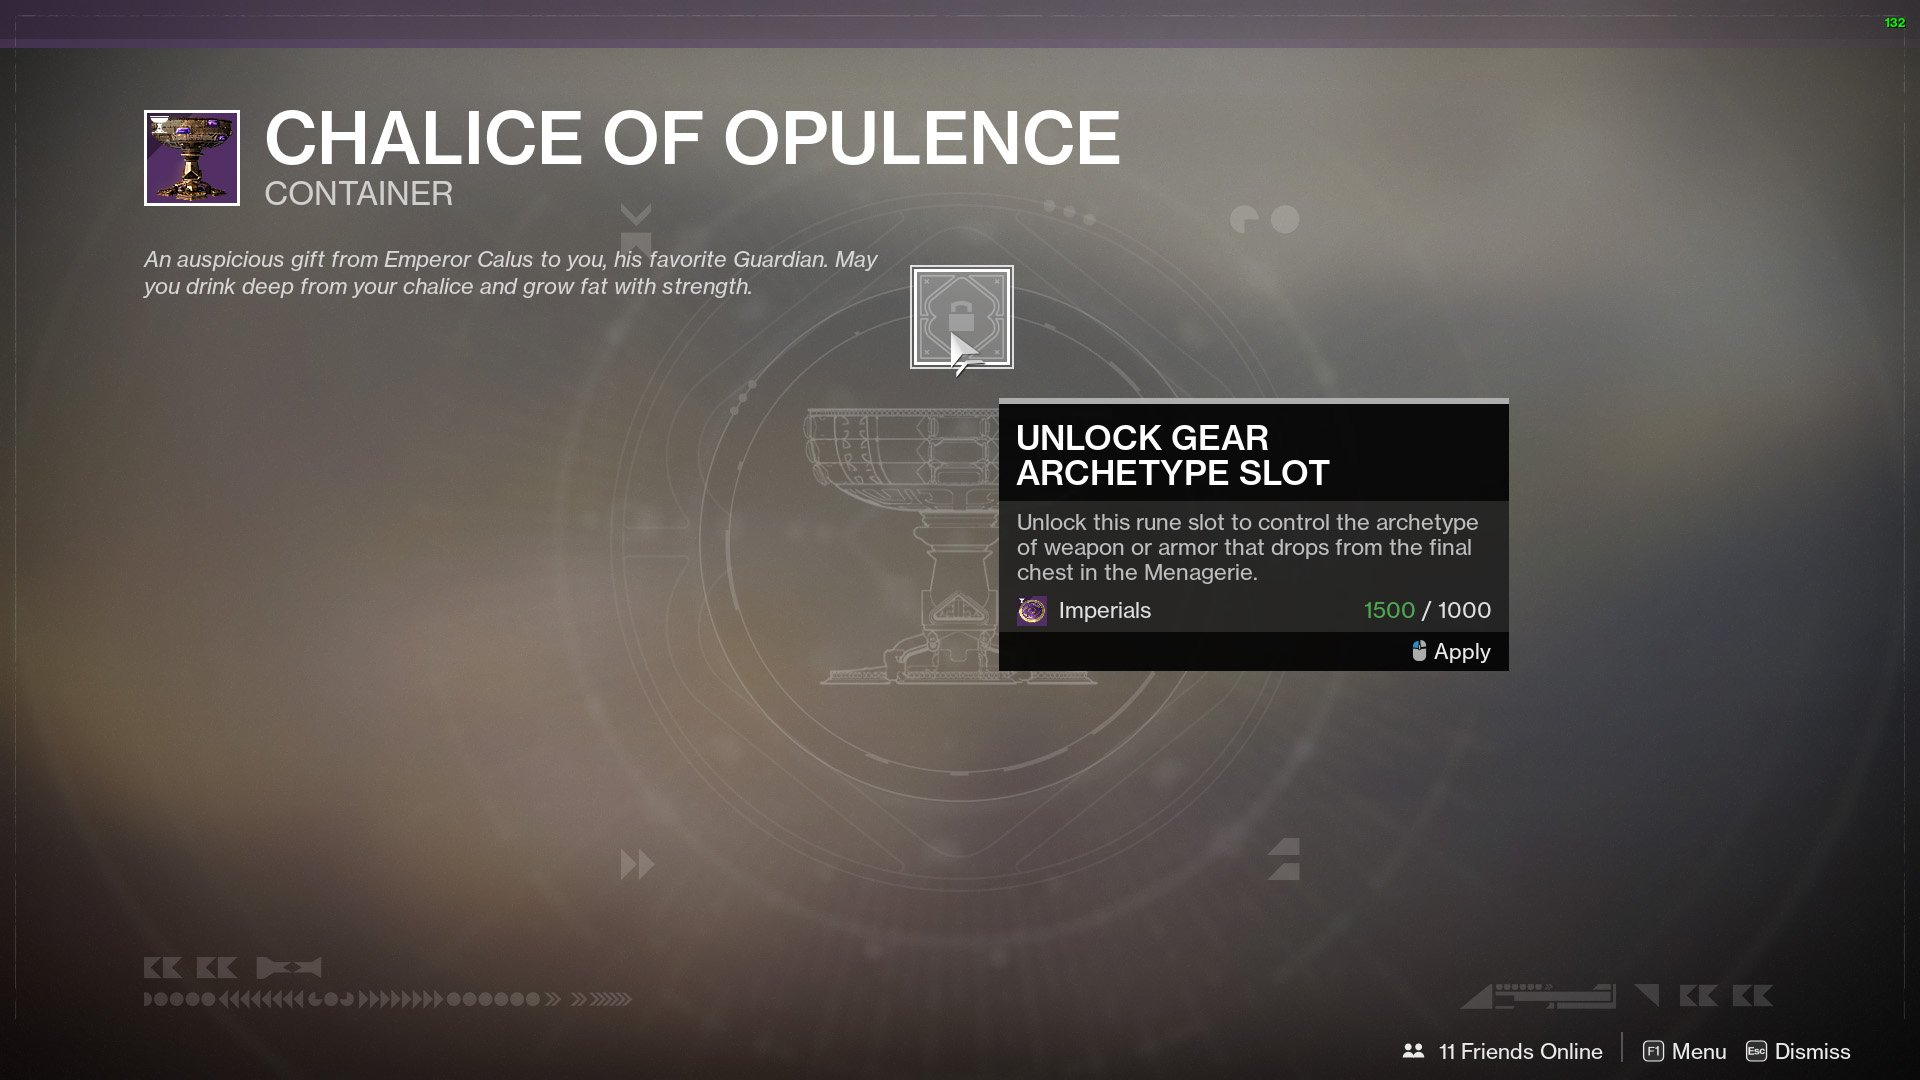 Destiny 2 Upgrade Chalice of Opulence